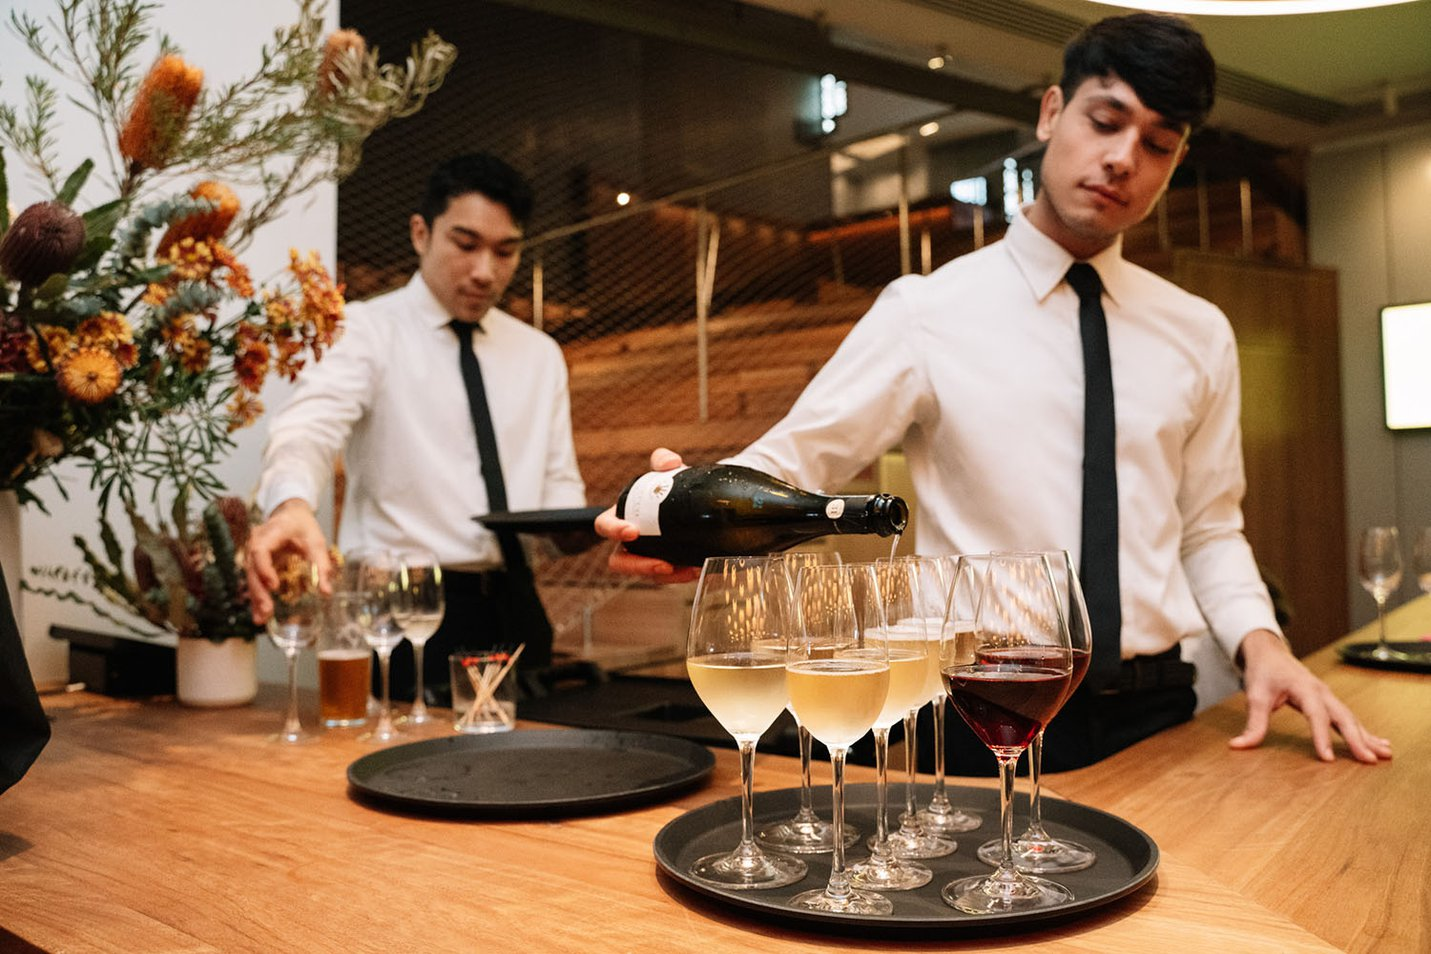 Wait staff pouring red and white wine at the opening of Disney - The Magic of Animation